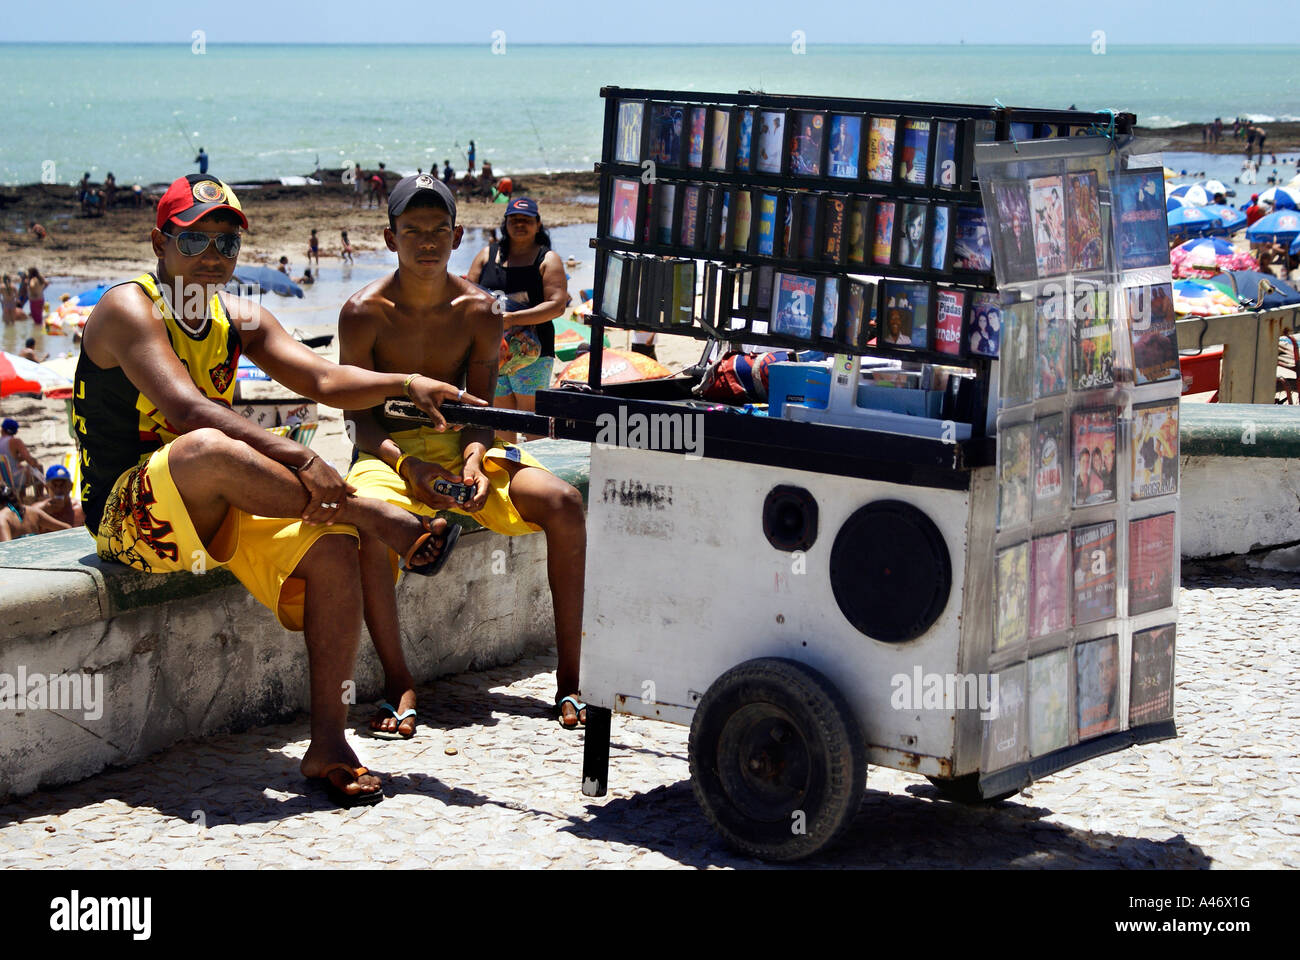 Dealers of illegally copied DVDs (pirate copies) at a beach in Recife, Brazil - Stock Image